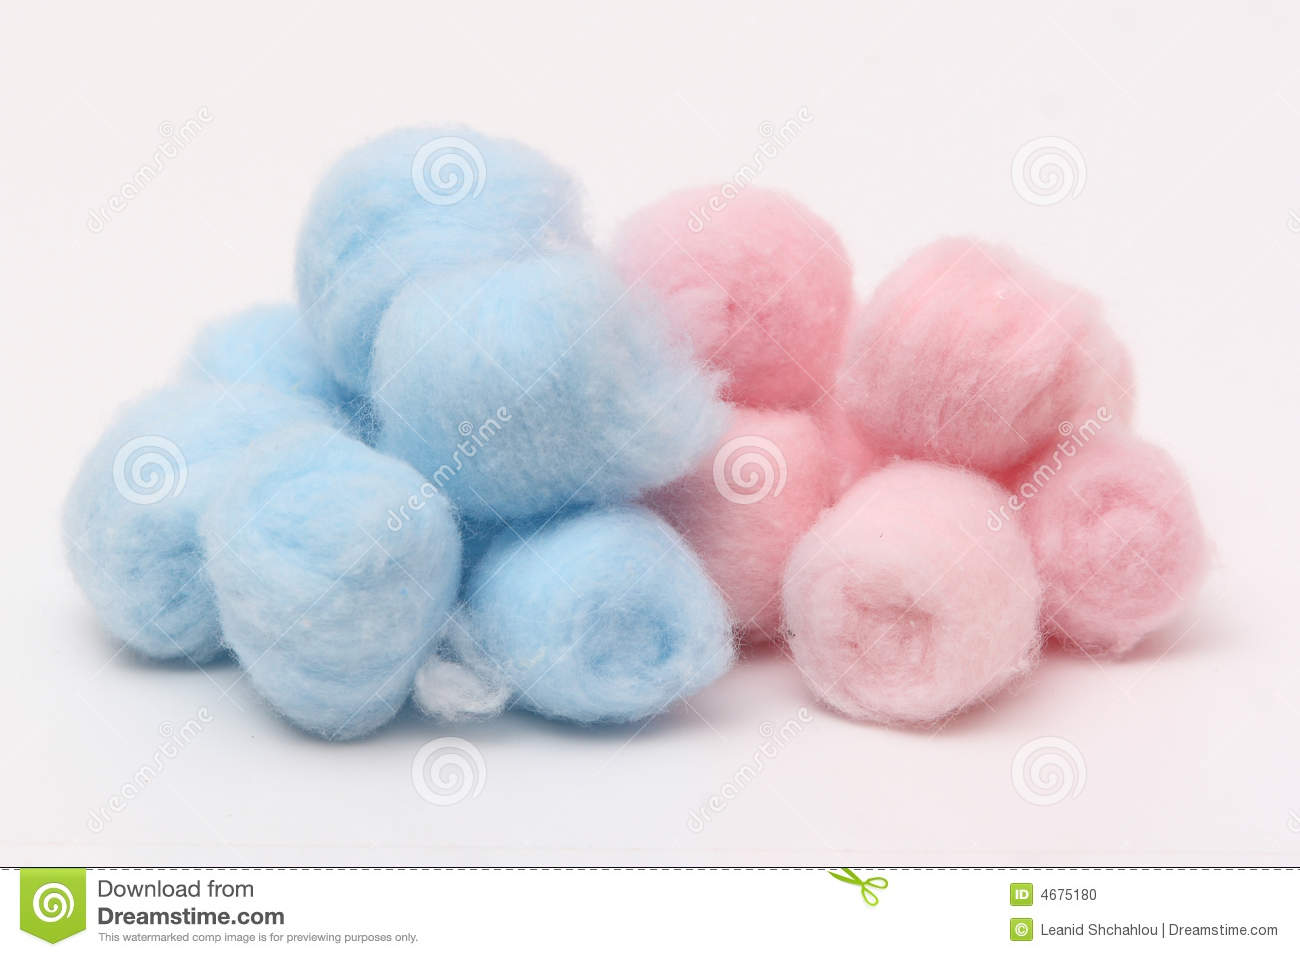 Pink Hygienic Cotton Balls Royalty Free Stock Images.